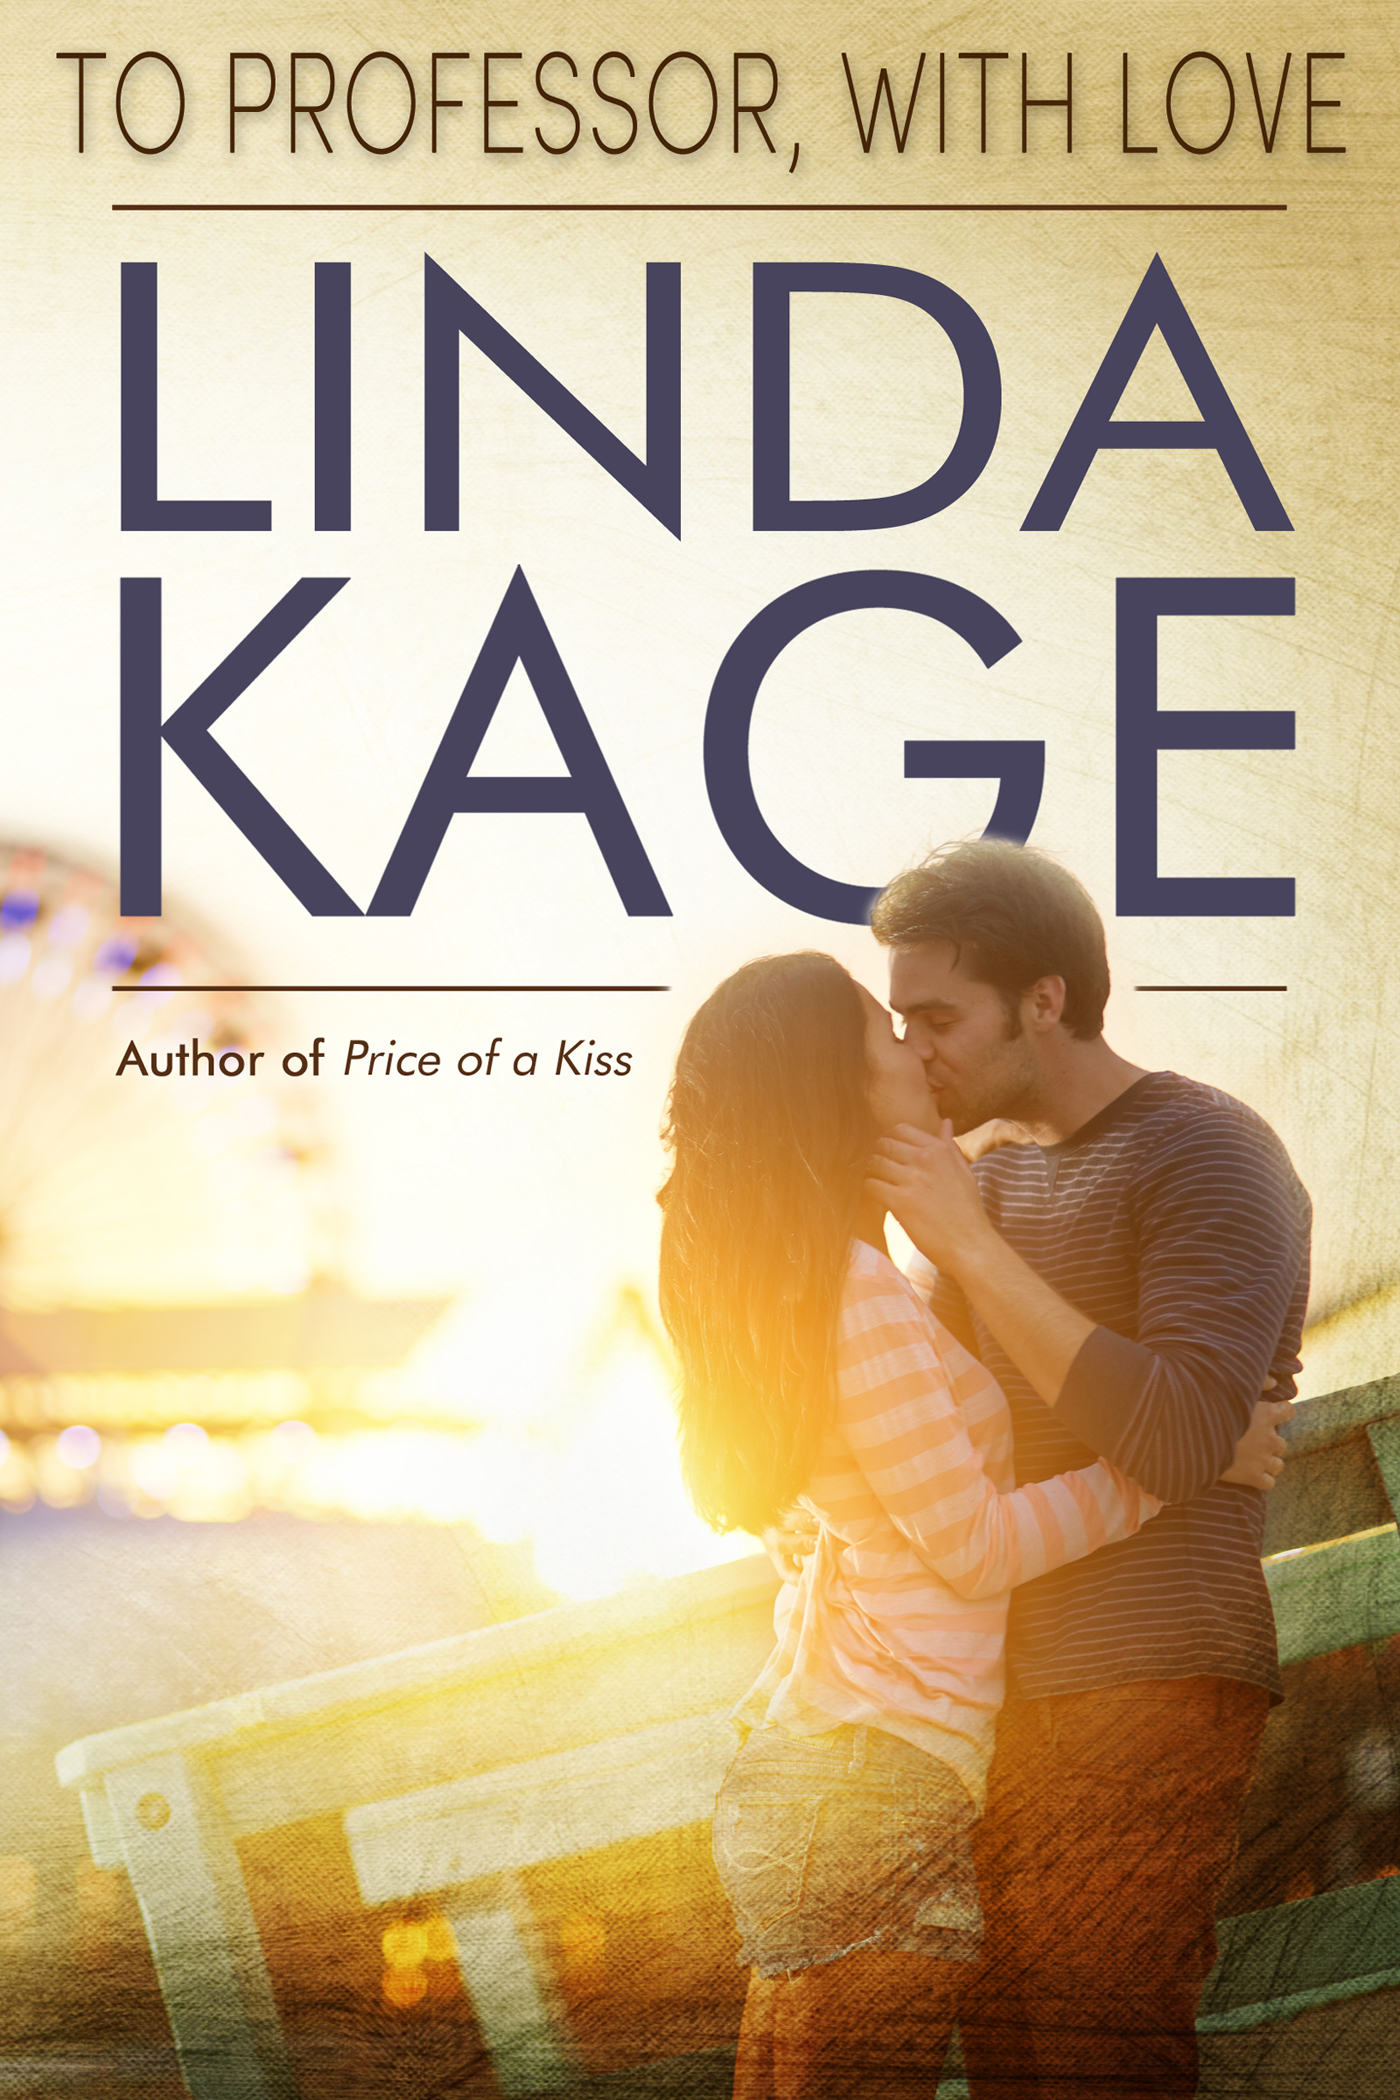 Linda Kage - To Professor, with Love